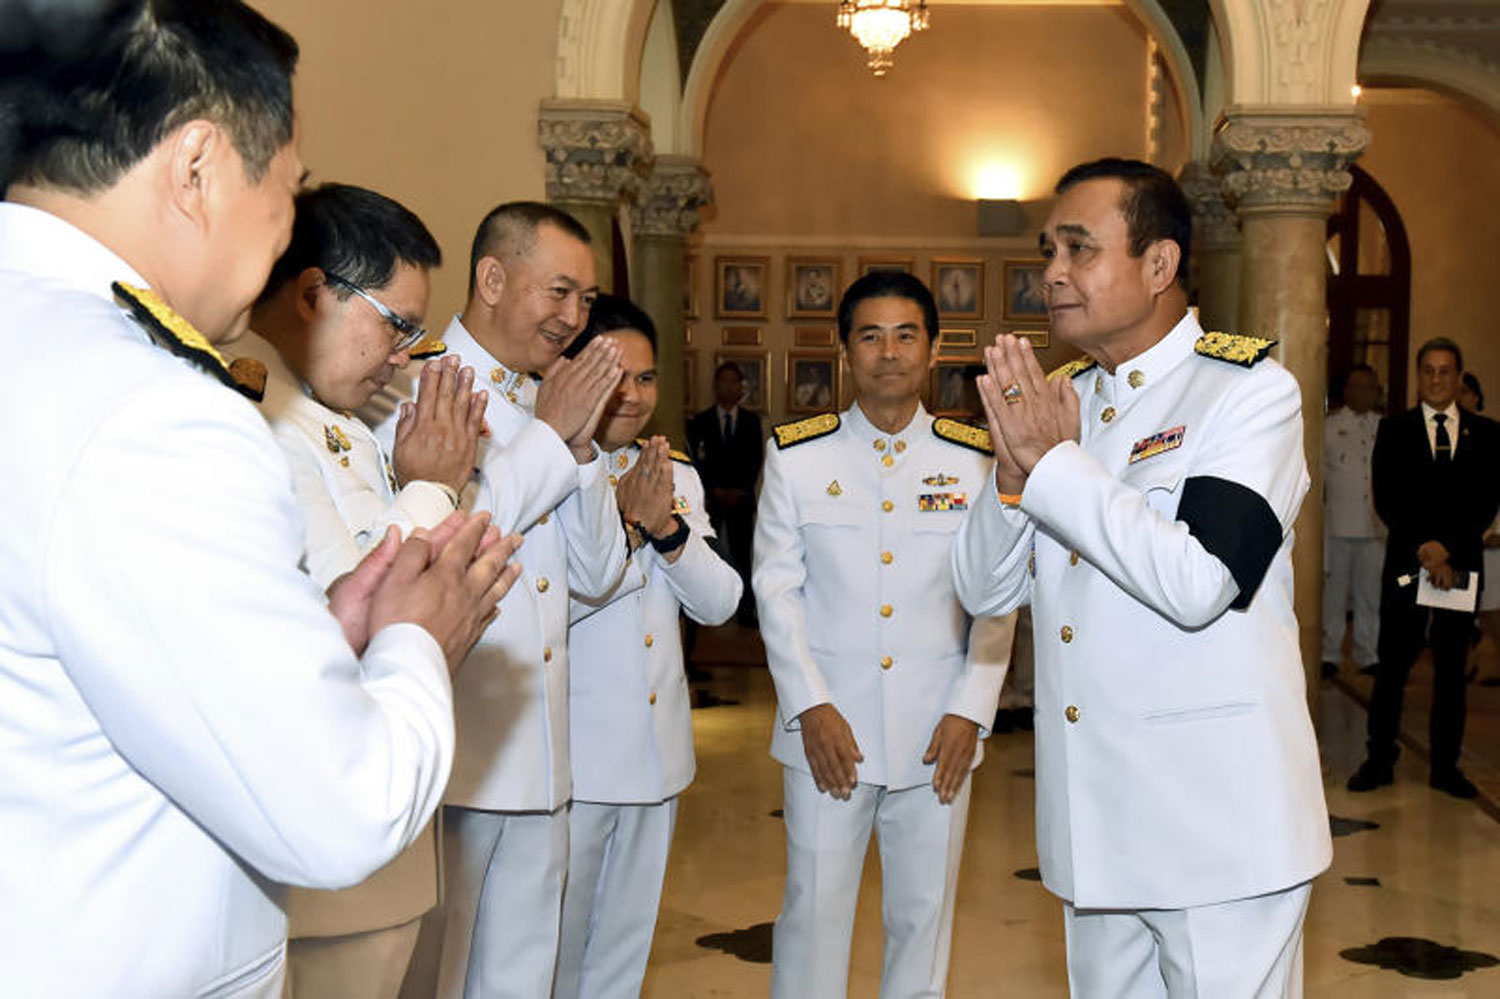 Gen Prayut Chan-o-cha greets leaders and representatives from coalition allies at Government House on June 11 after being appointed prime minister. (Government House photo)